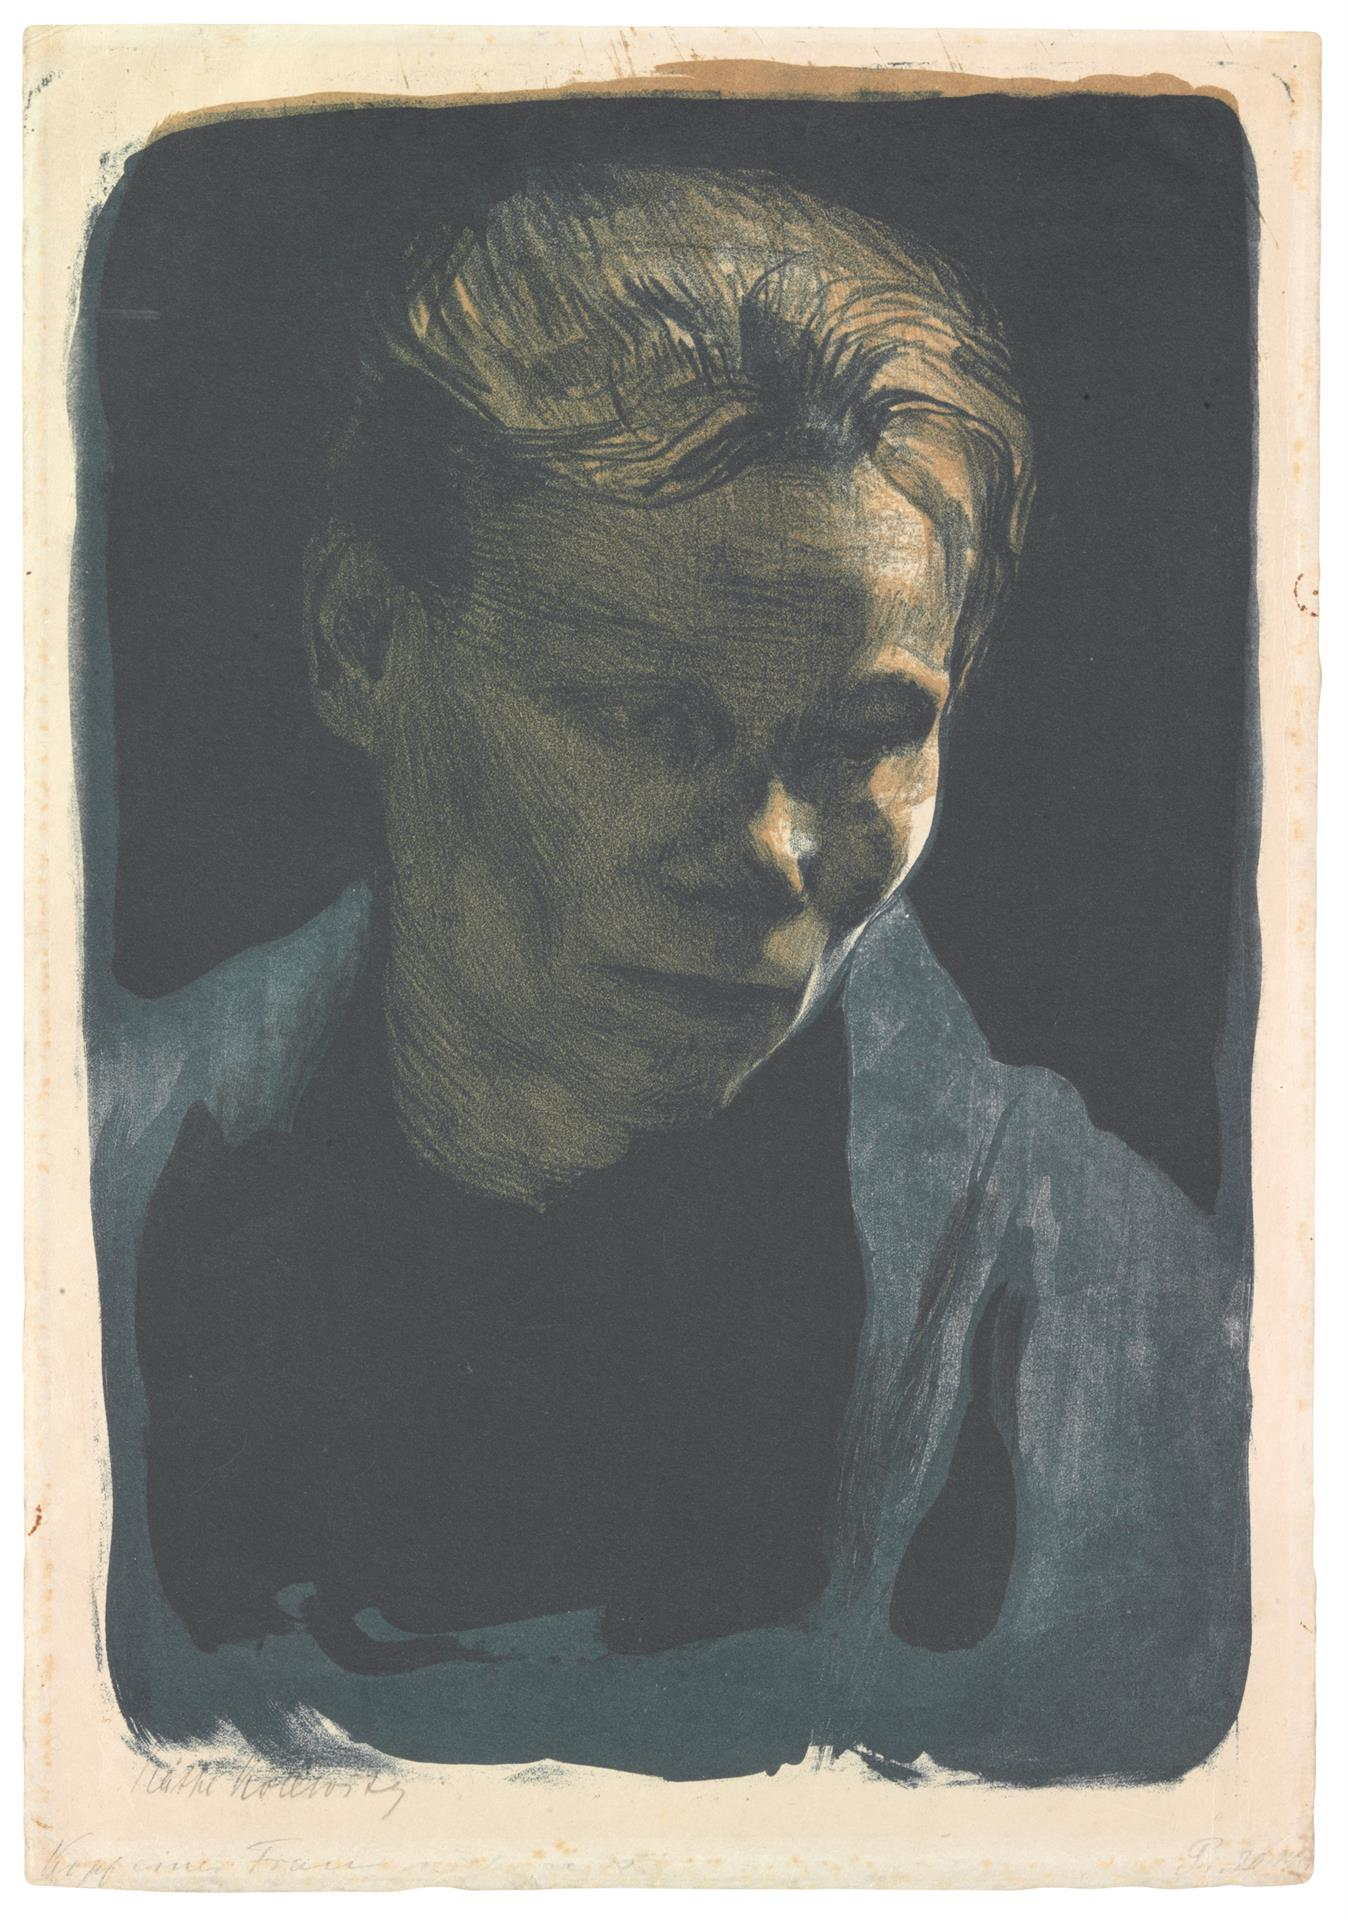 Käthe Kollwitz, Bust of a Worker Woman with Blue Shawl, 1903, crayon and brush lithograph in two colors, with scratch technique in the drawing stone, printed blue, Kn 75 A I 1, Cologne Kollwitz Collection © Käthe Kollwitz Museum Köln